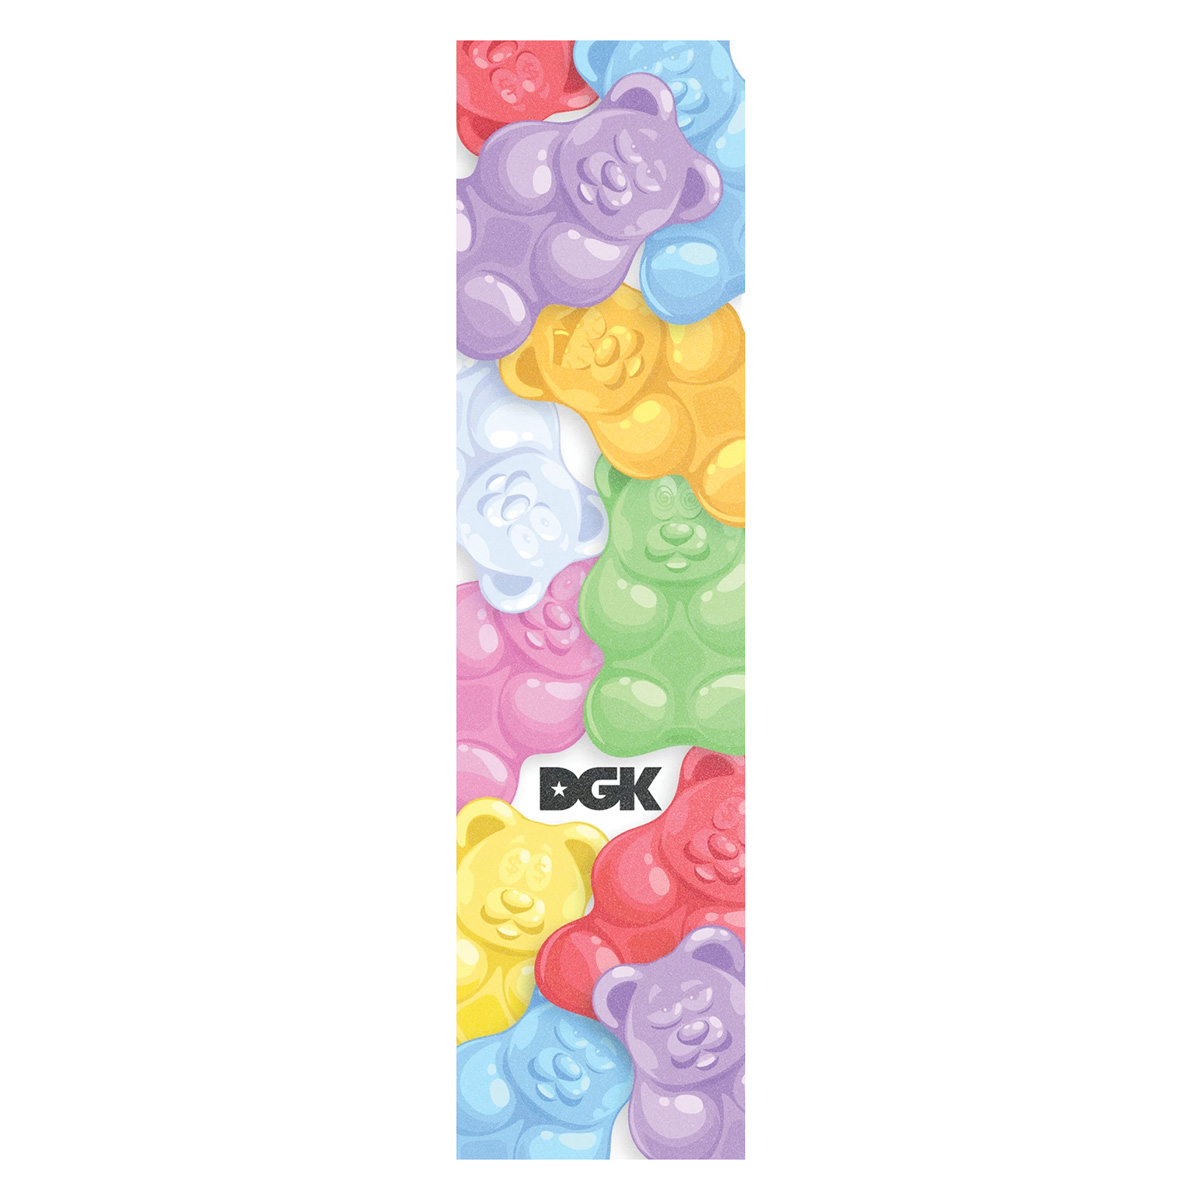 DGK GRIP GUMMIES SHT - Click to enlarge